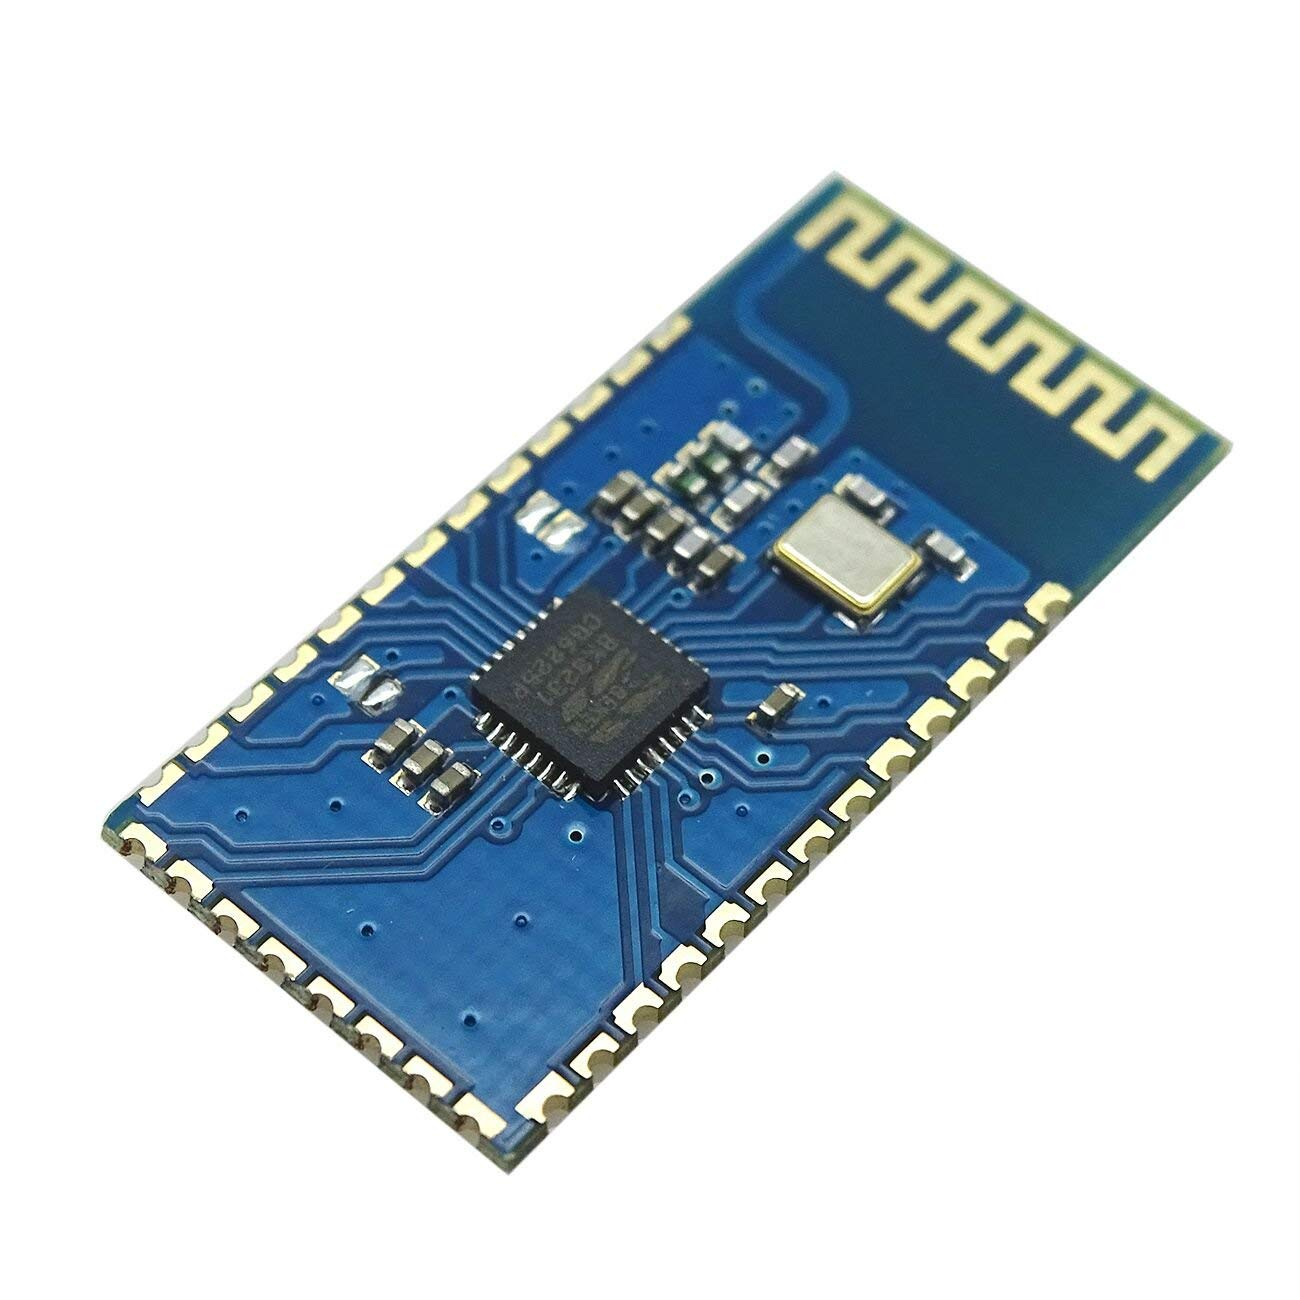 Mustwell 10PCS/LOT SPP-C Bluetooth Serial Pass-Through Module Wireless Serial Communication from Machine Wireless SPPC Bluetooth Module